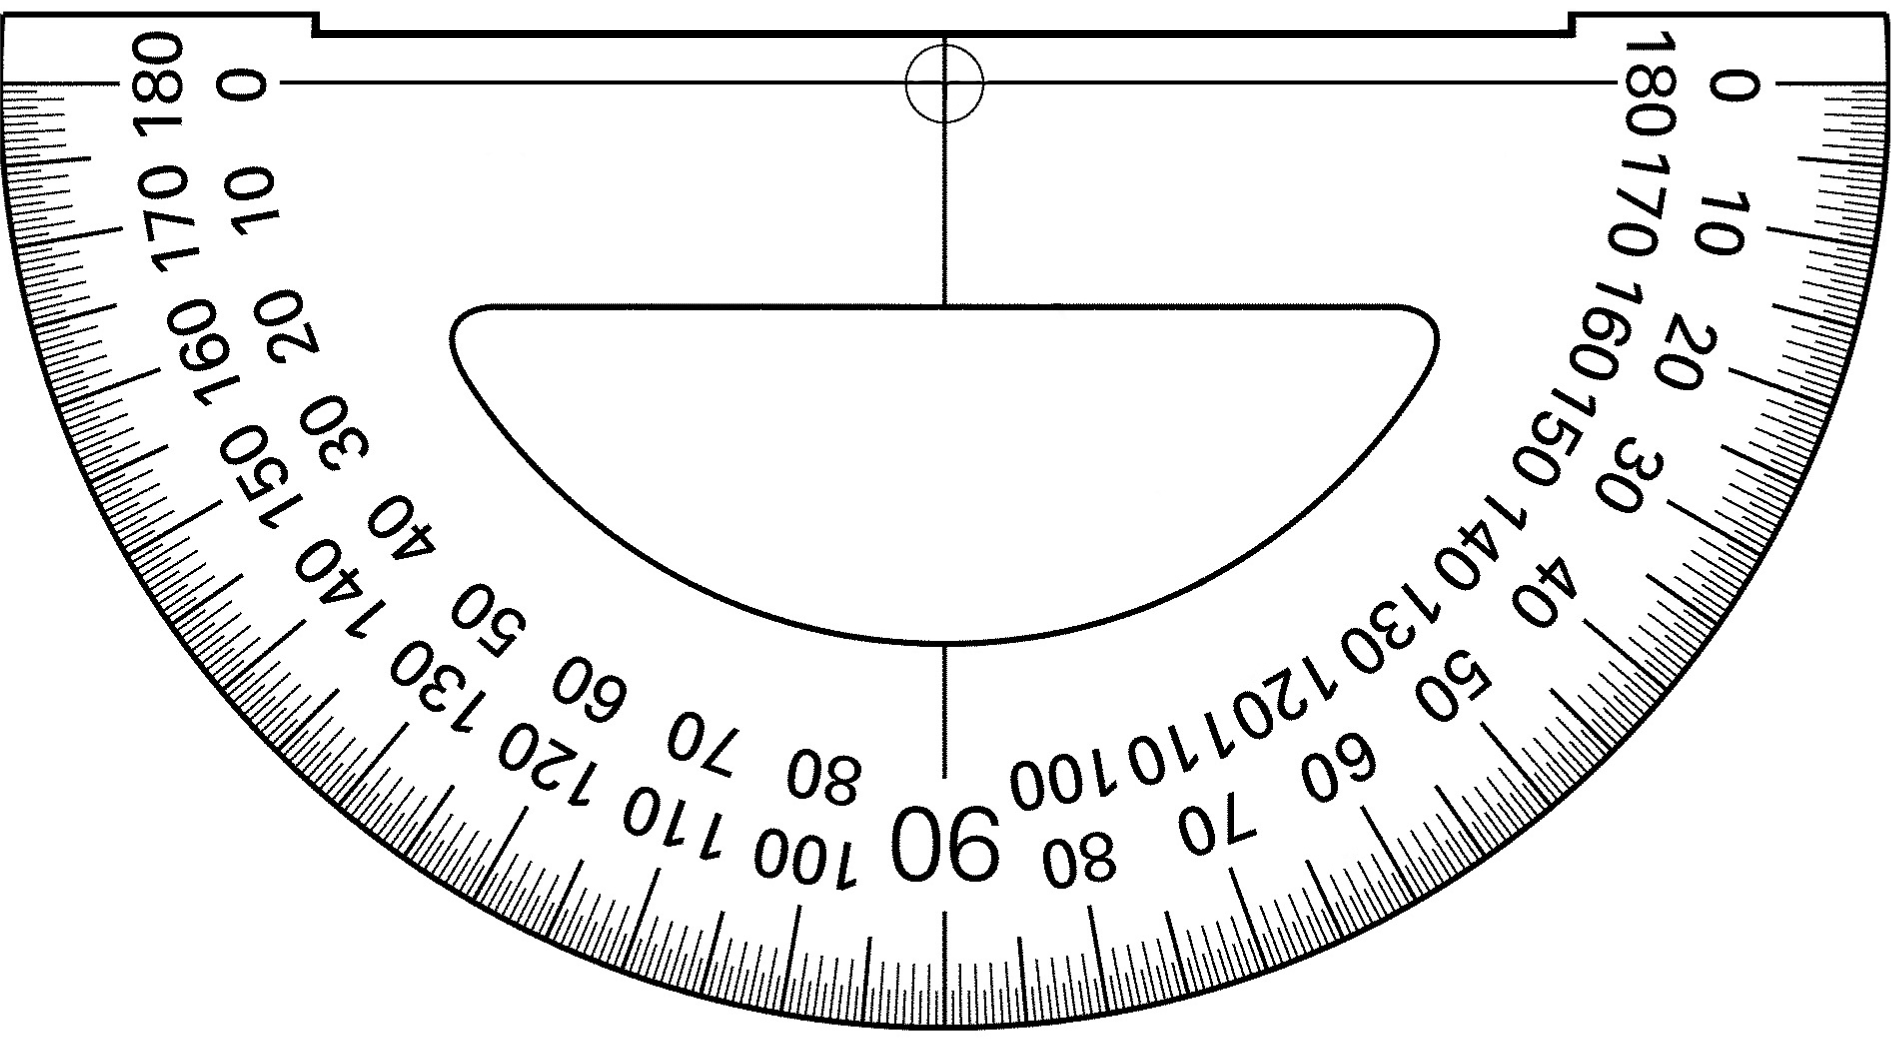 worksheet Protractor Print similiar printable protractor template keywords displaying 16 images for degrees